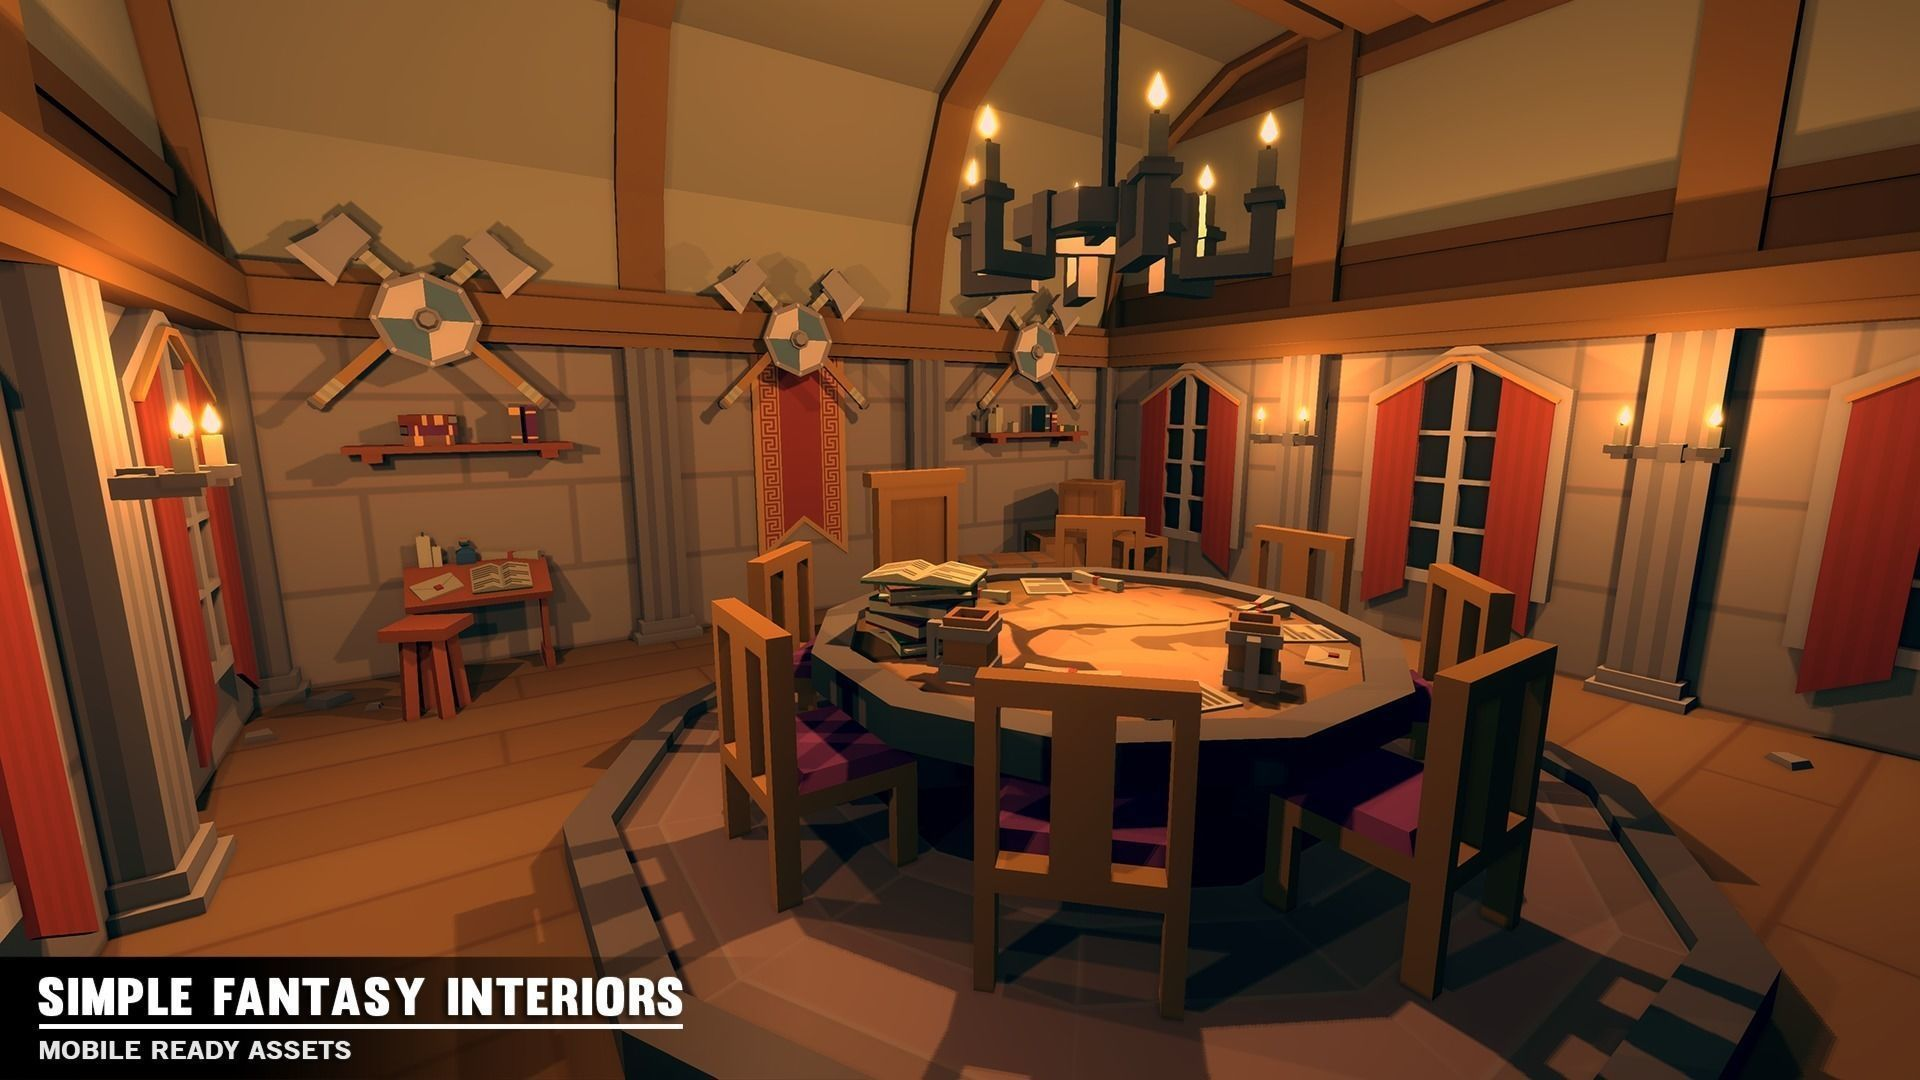 Simple Fantasy Interiors Cartoon Assets 3d Model With Images